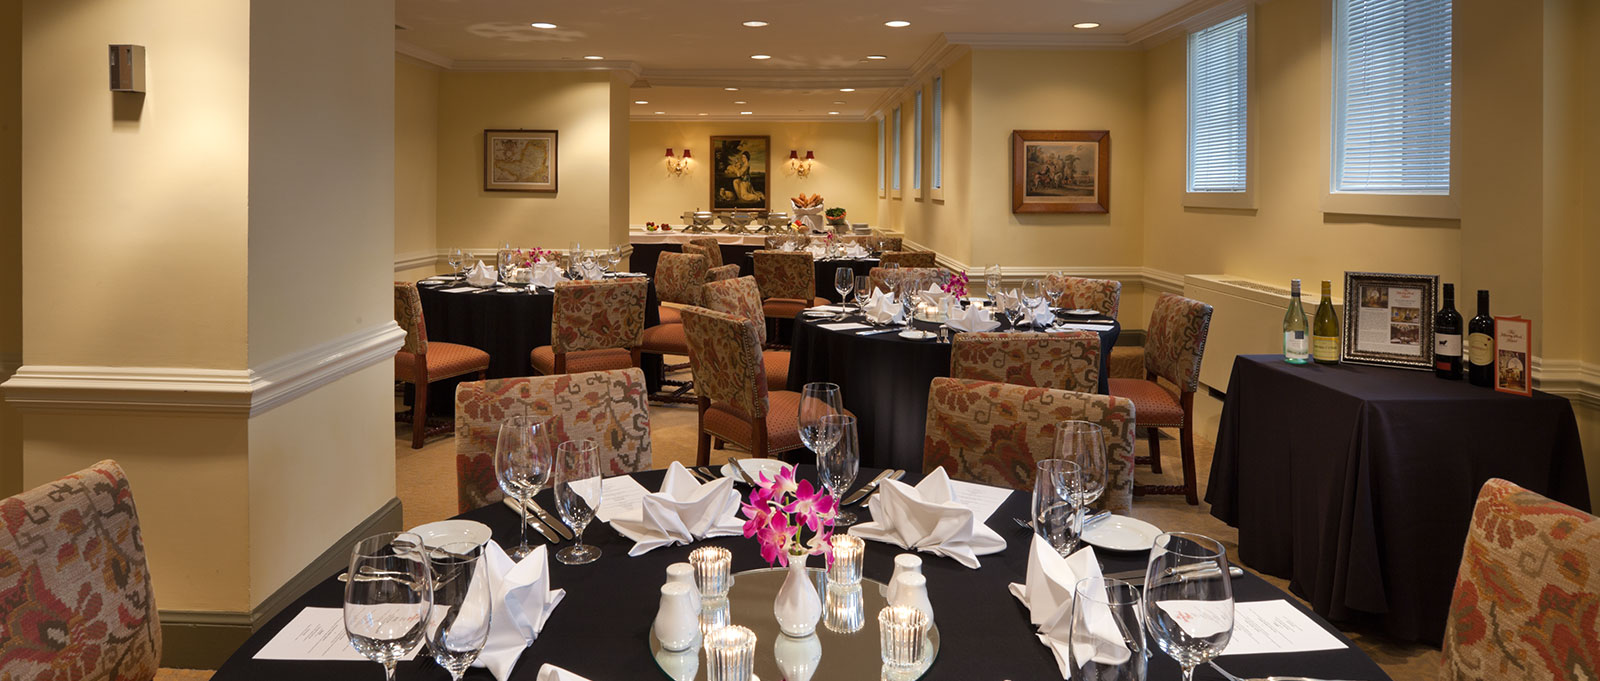 Henley Park Hotel event space in Washington DC, Maryland, Virginia, DC Area